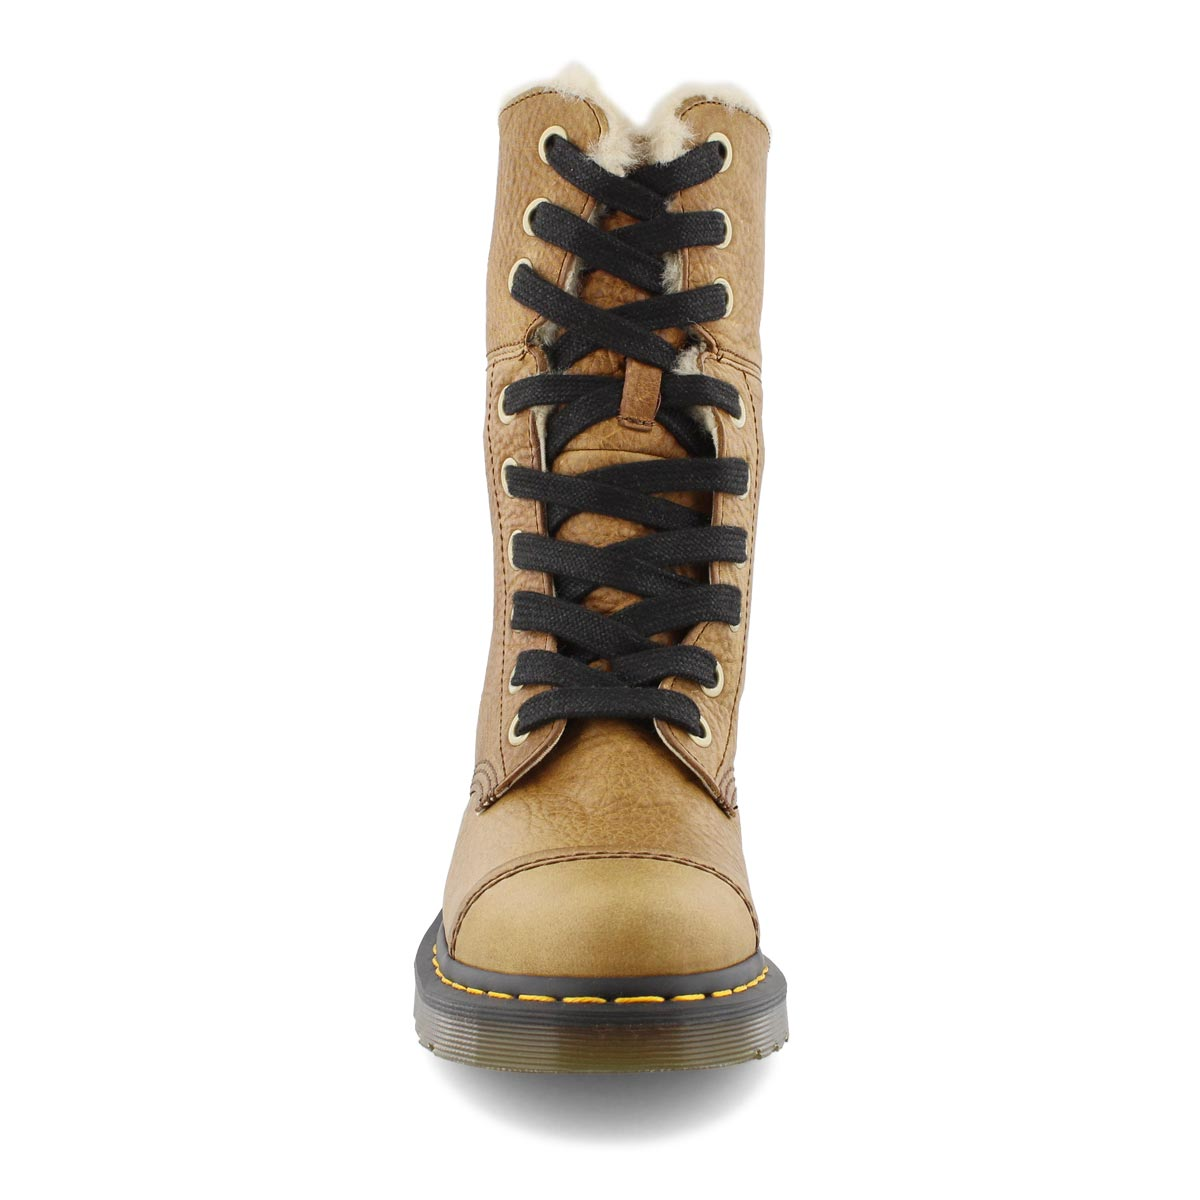 Lds Aimilita FL 9-eye tan combat boot